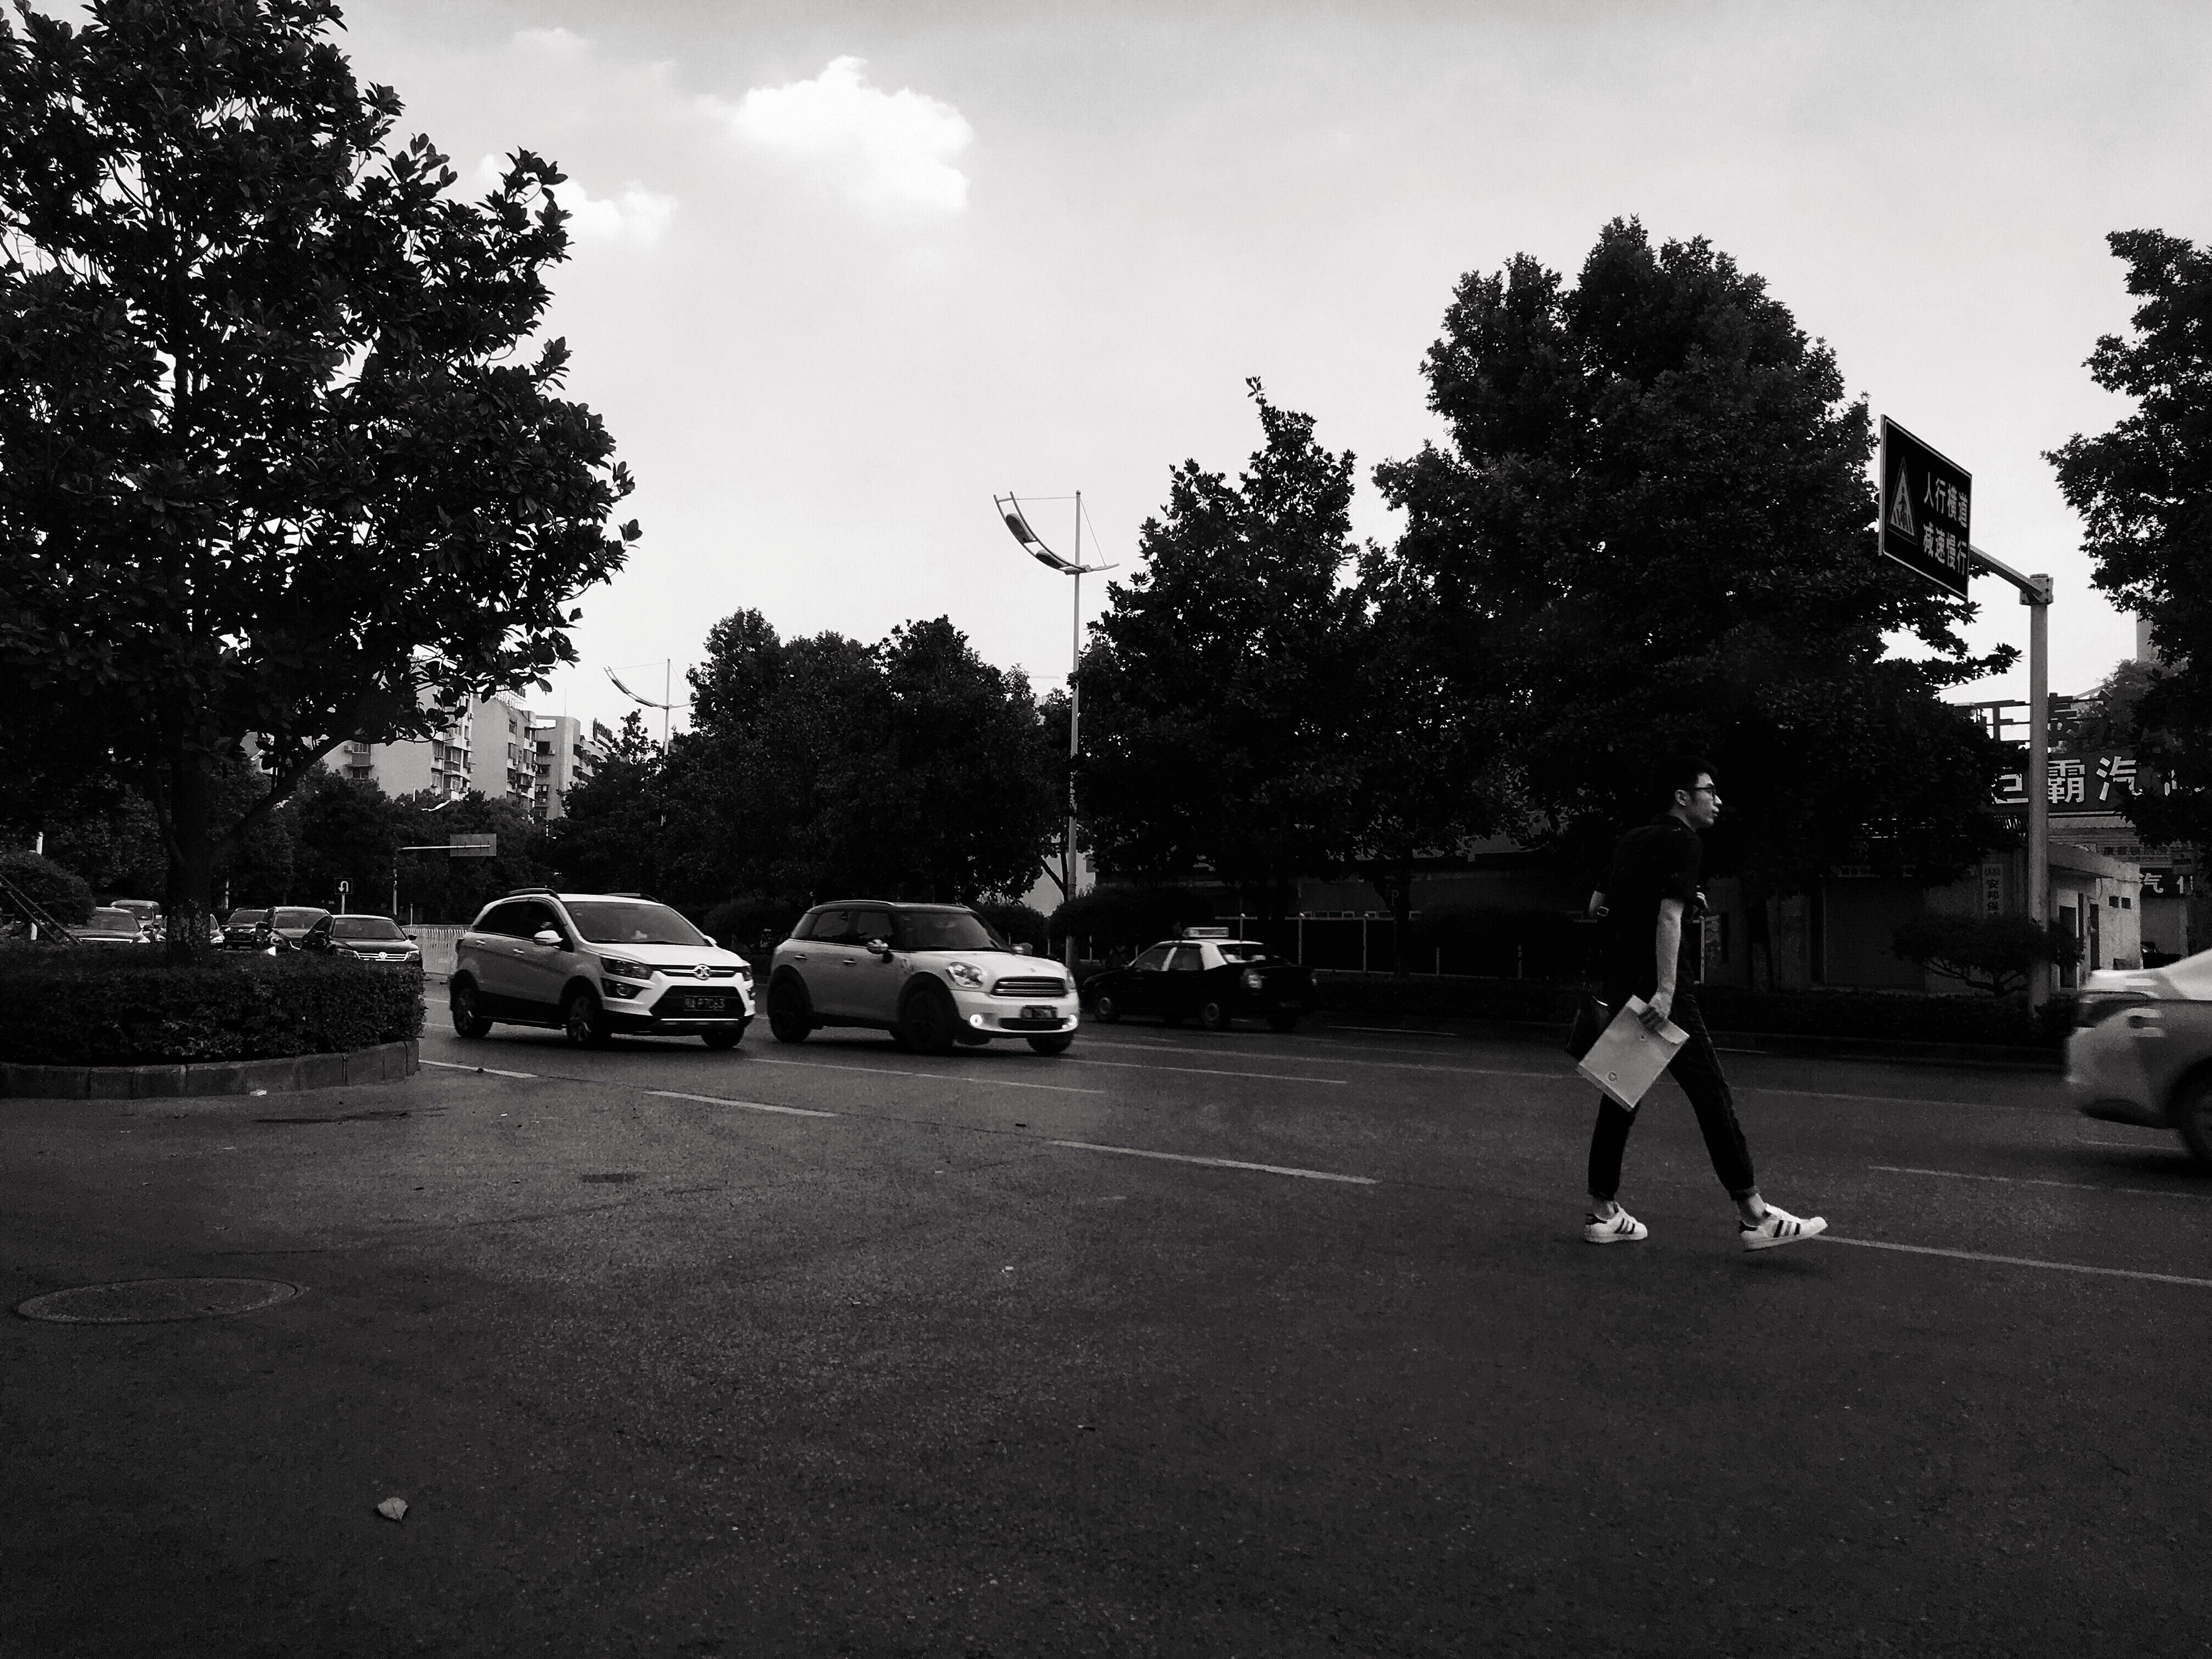 tree, car, transportation, land vehicle, men, outdoors, real people, full length, sky, road, city, day, one person, people